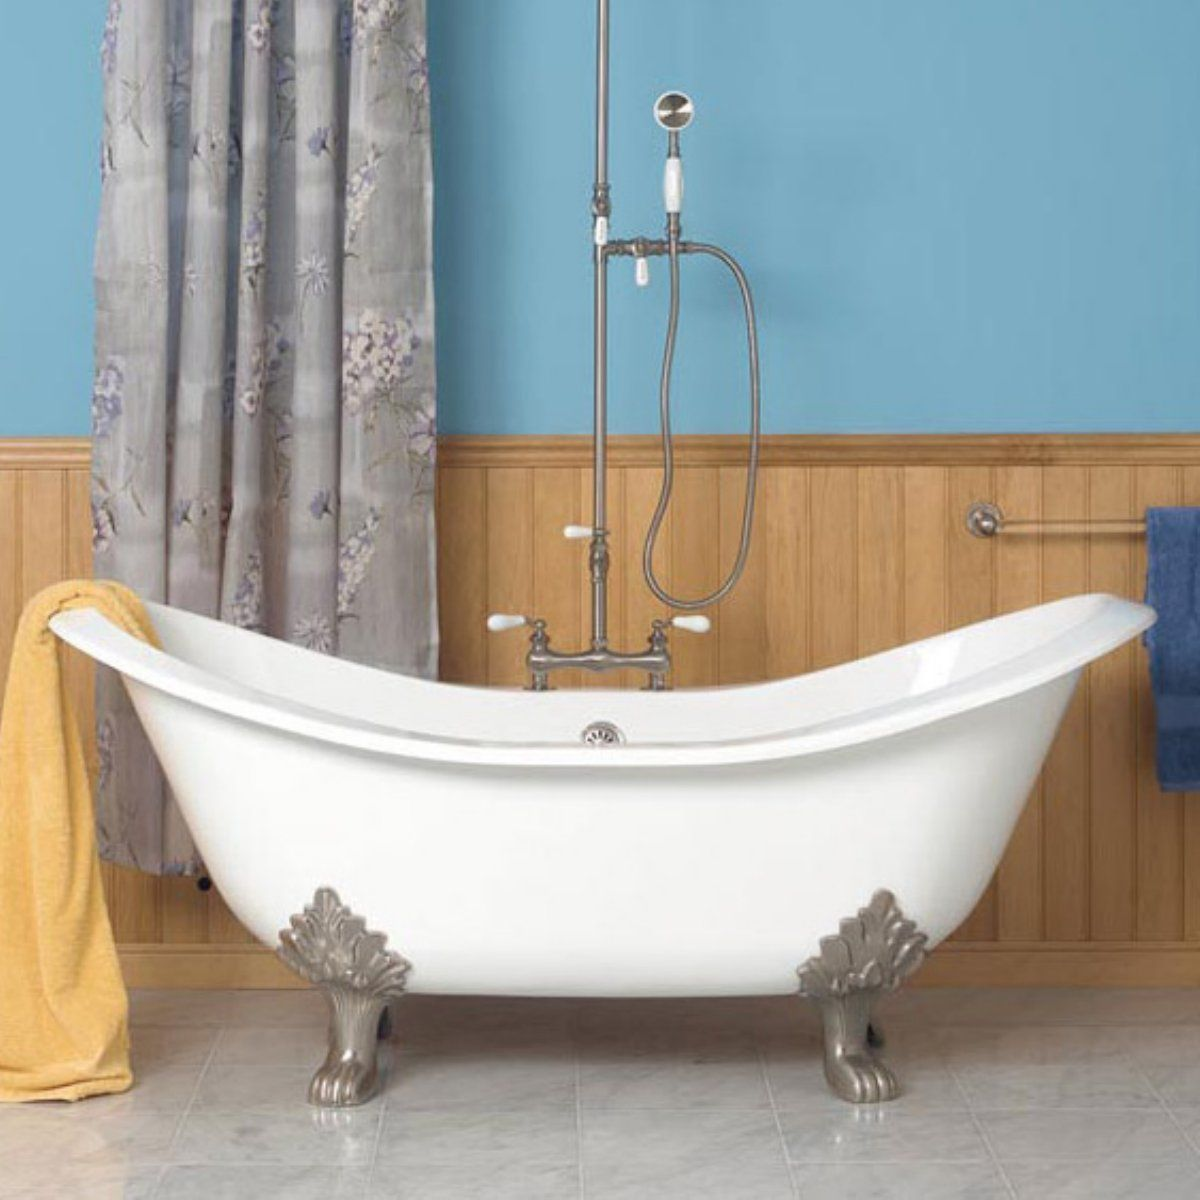 Bathtubs And Showers Clawfoot Tubs With Wood Wall Decoration And Blue Paint  Color